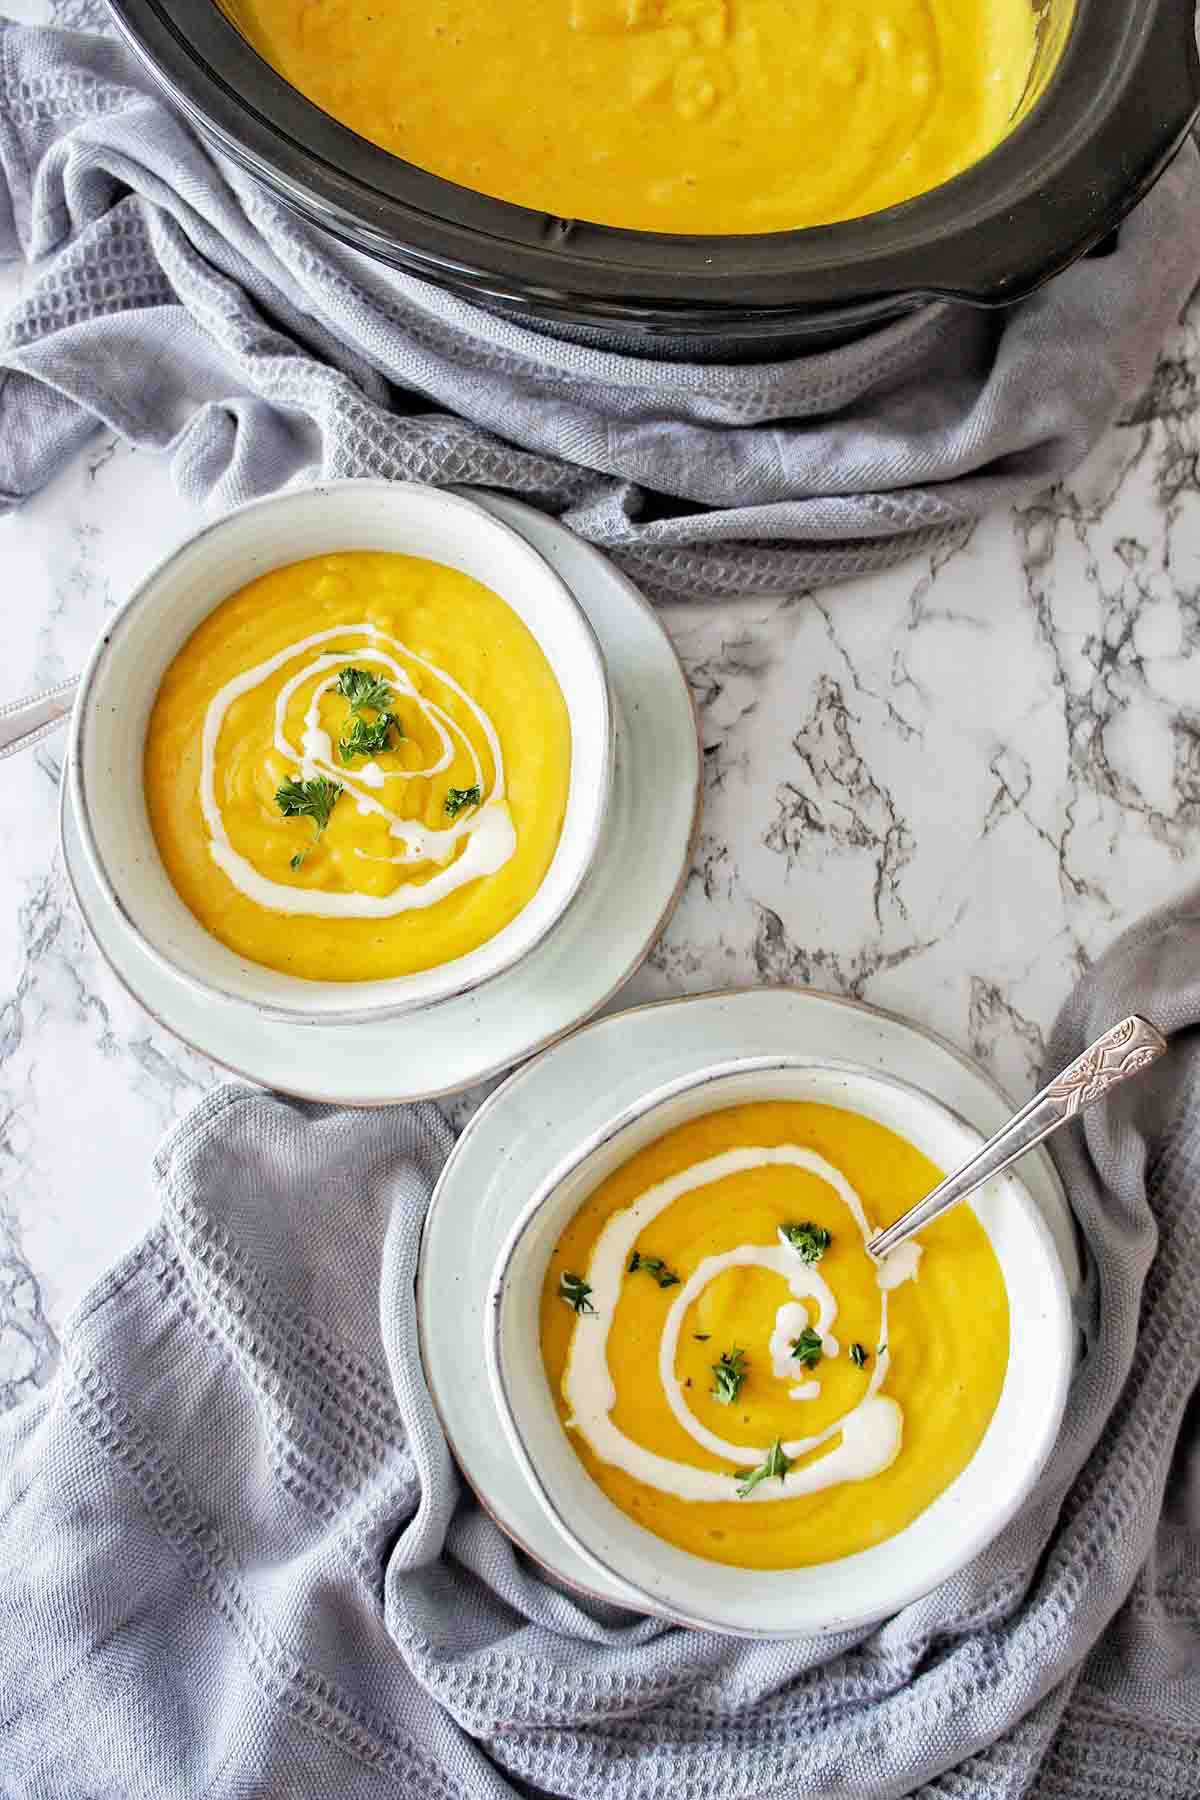 Pumpkin soup in 2 blue bowls with crock pot in the background